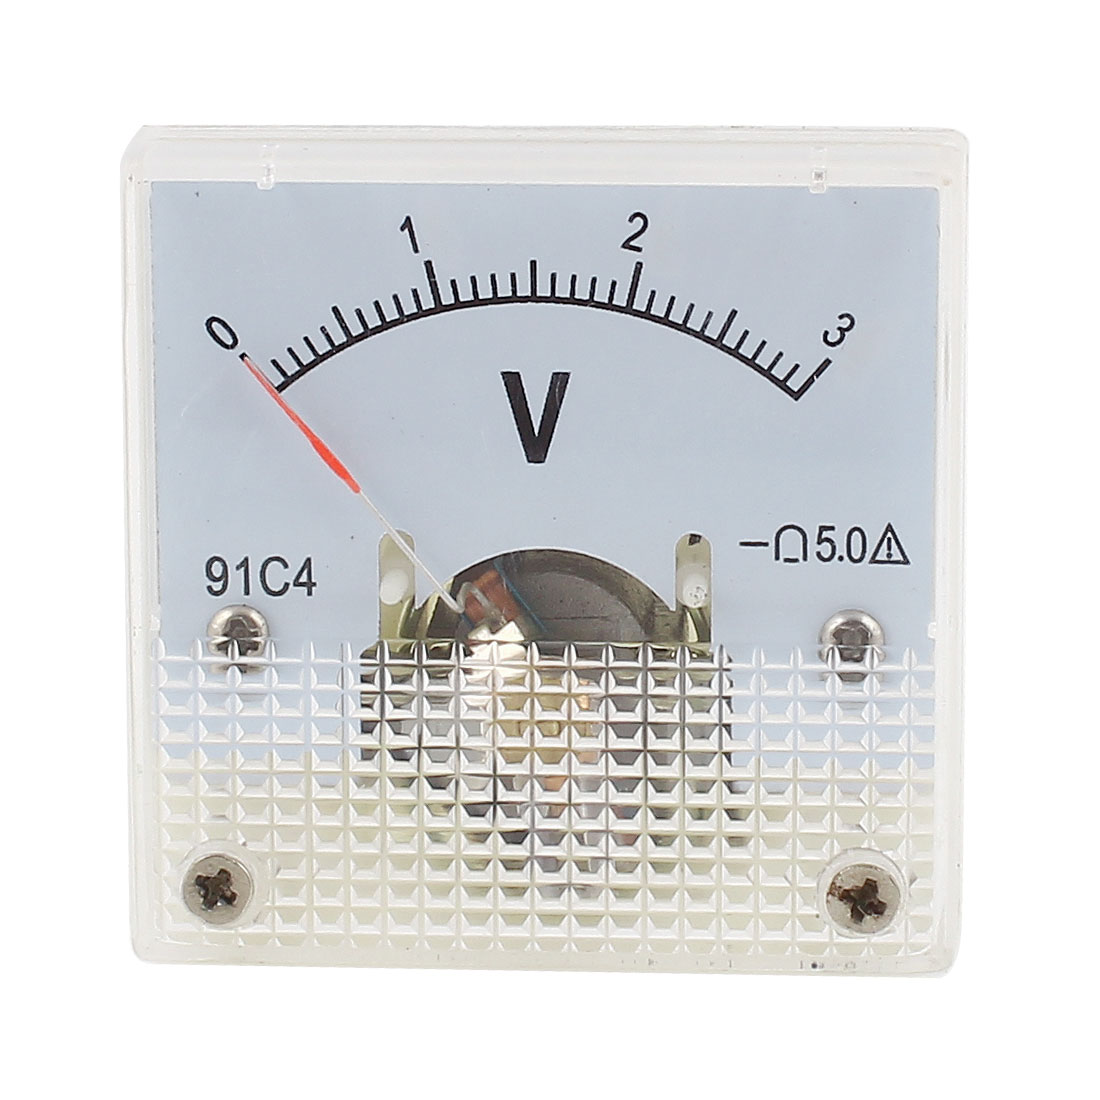 Class 5.0 Accuracy Analog DC 0V-3V Scale Electric Voltage Meter Panel